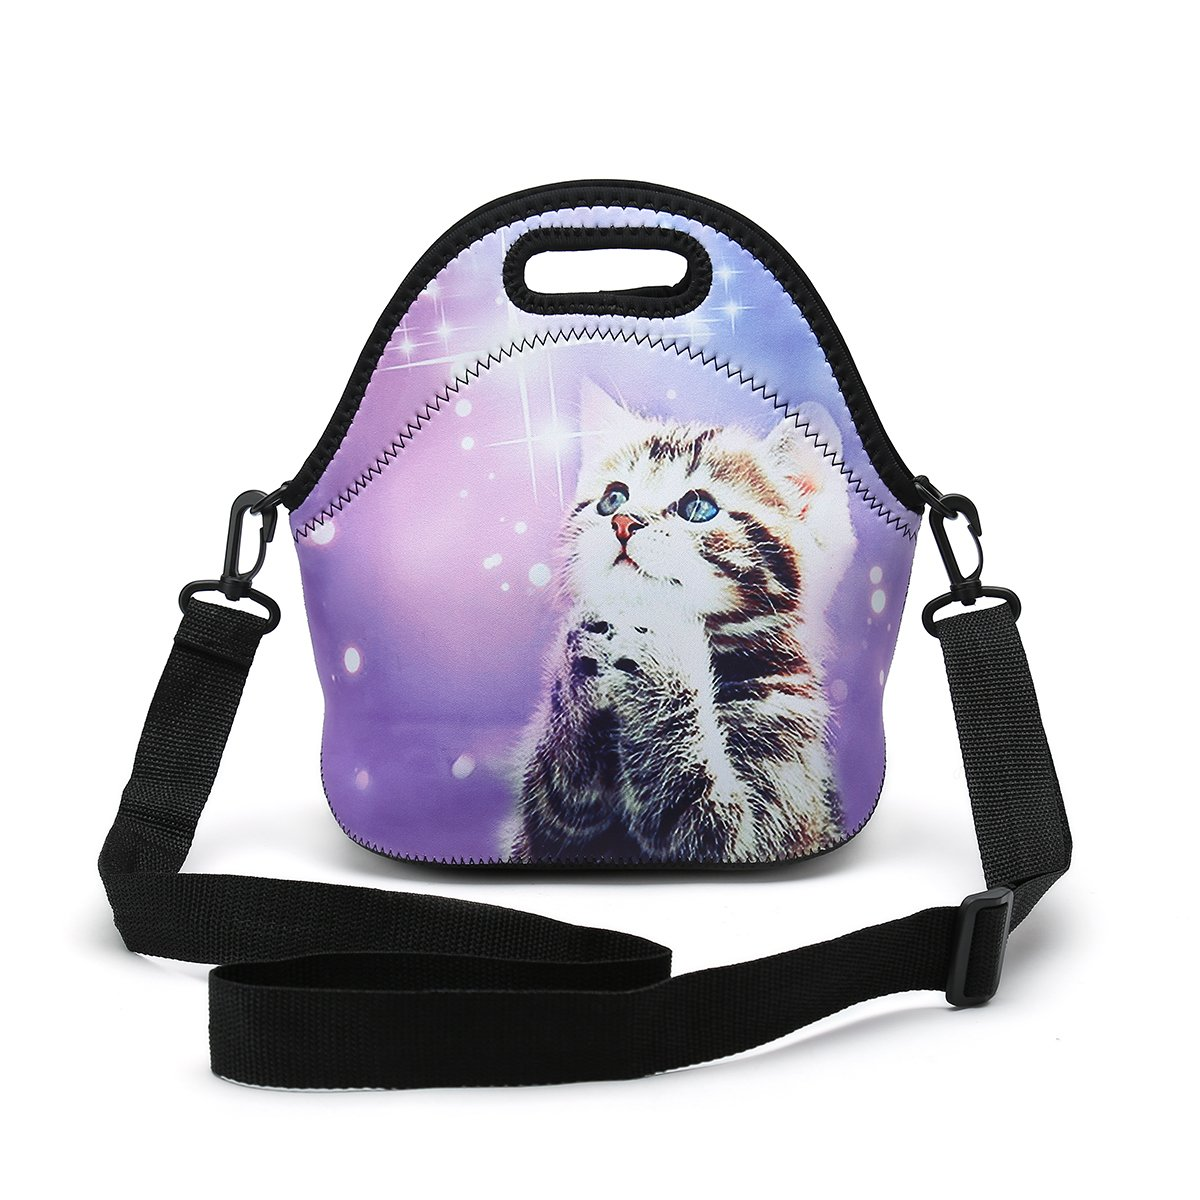 Insulated Neoprene Lunch Bag Removable Shoulder Strap Reusable Thermal Thick Lunch Tote Bags For Women,Teens,Girls,Kids,Baby,Adults-Lunch Boxes For Outdoors,Work,Office,School (Wish Cat)